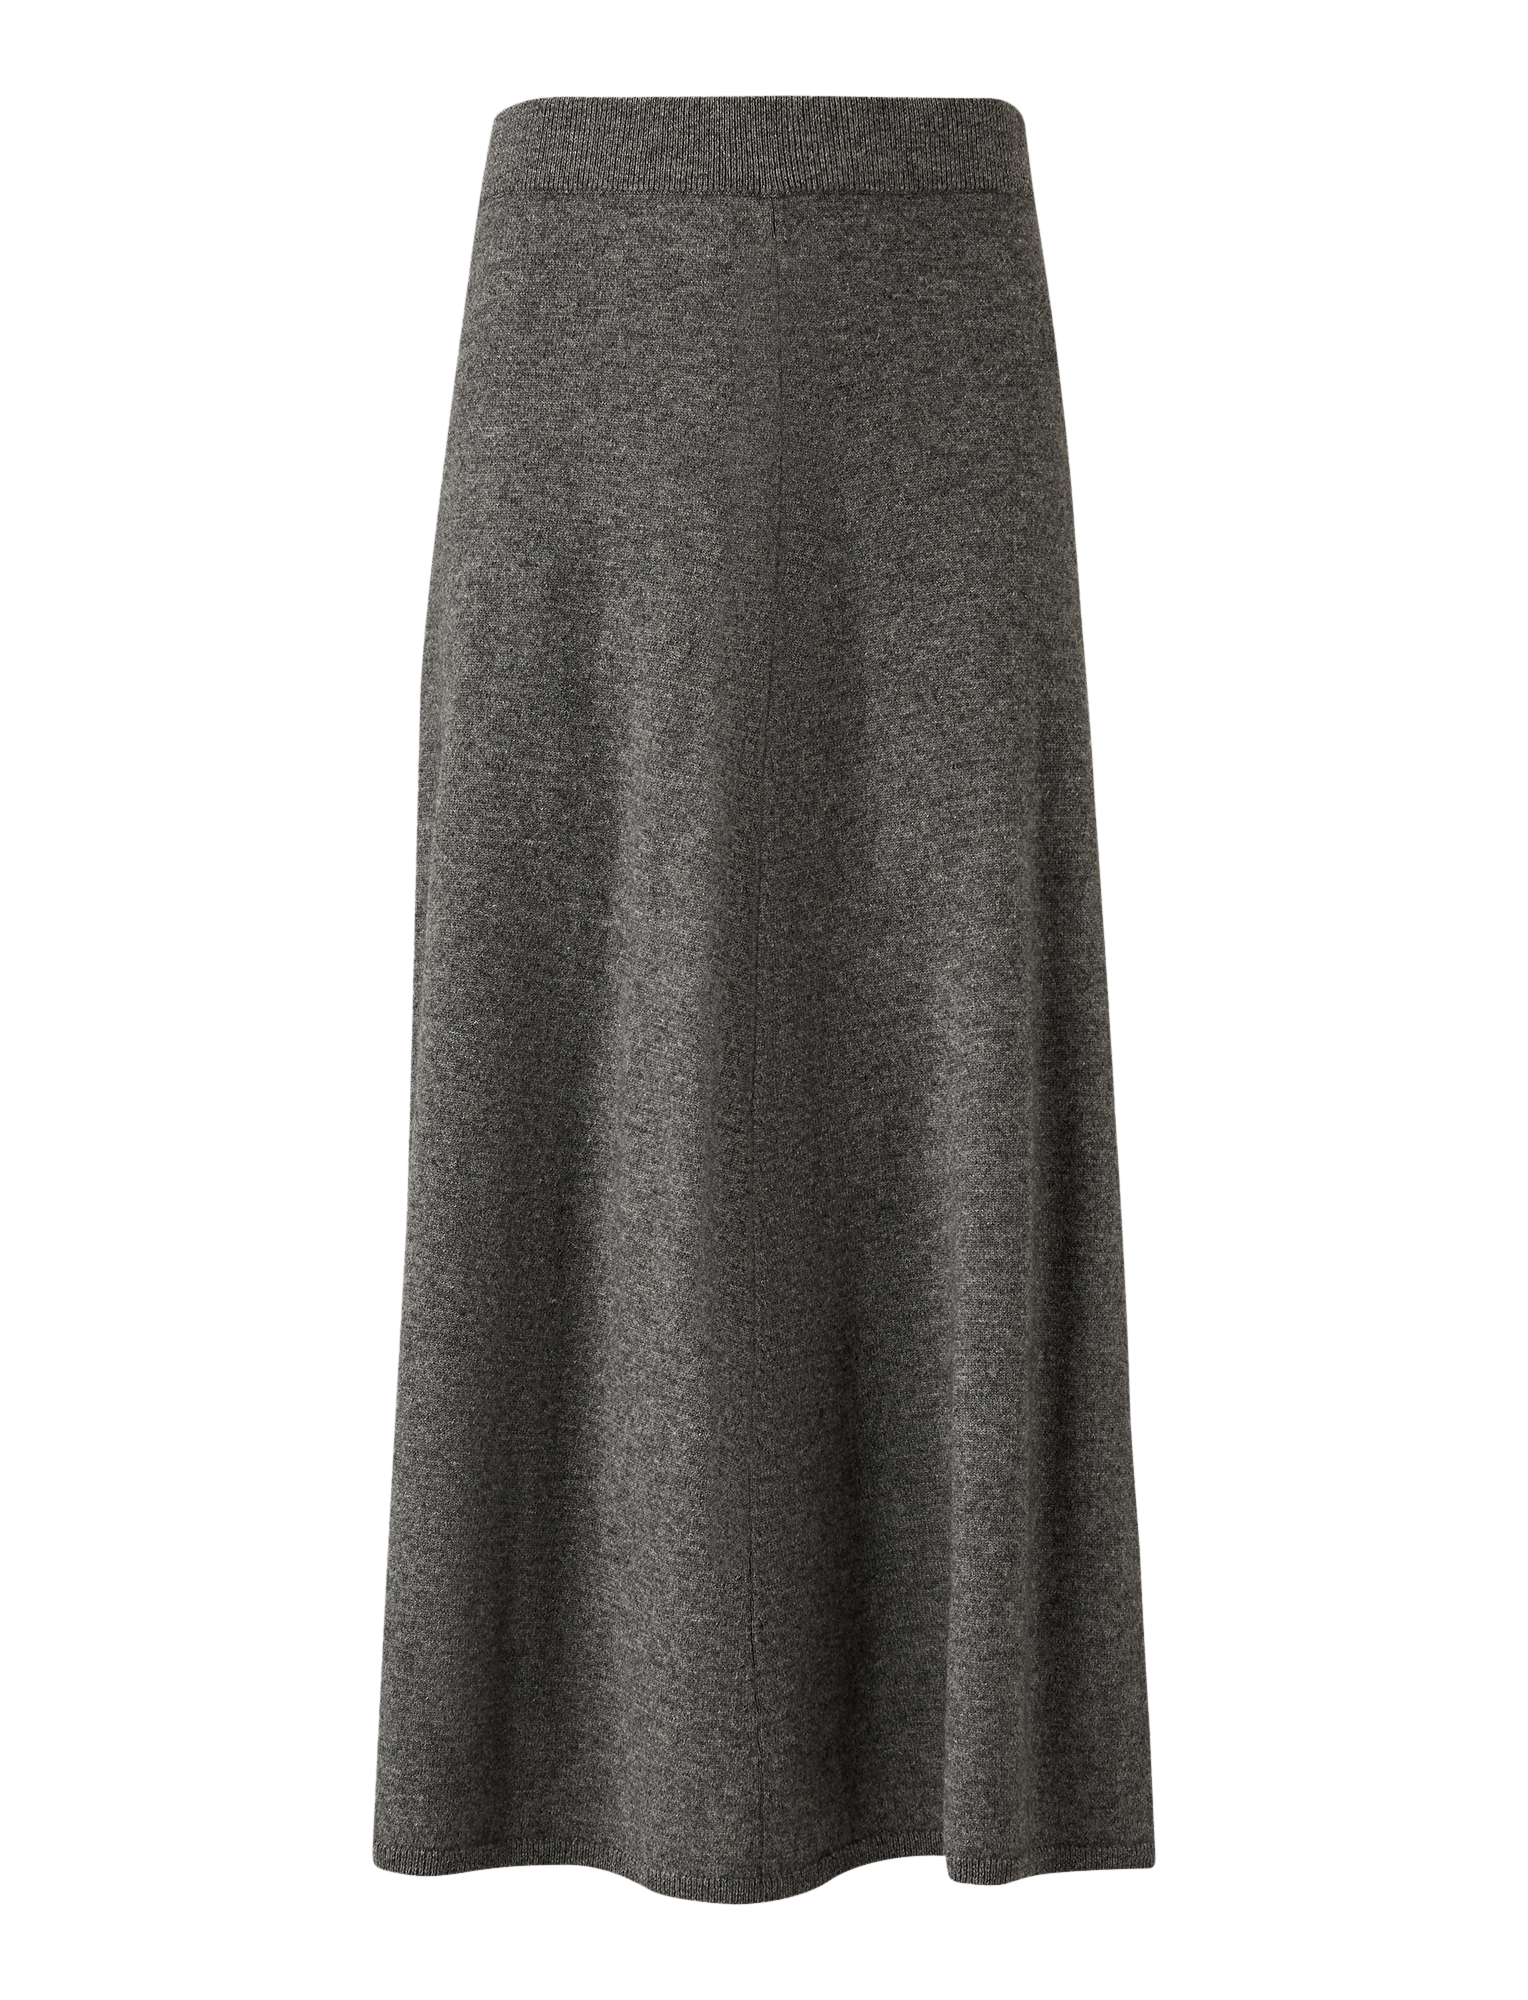 Joseph, Wool Cashmere Knit Skirt, in DARK GREY